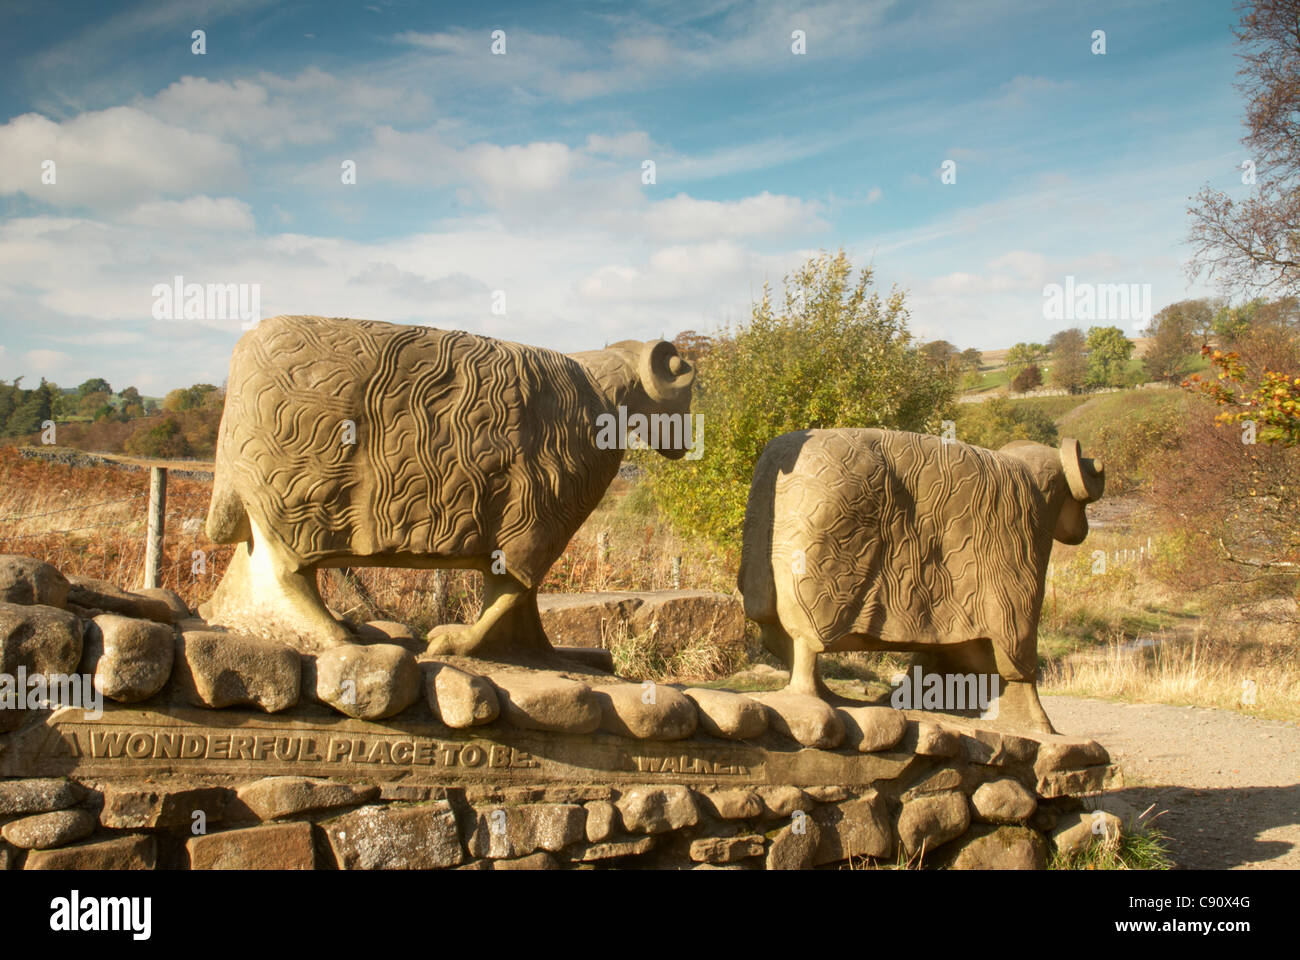 there are two sheep sculptures on the path to the River Tees and Low Force waterfalls at Bowlees. - Stock Image